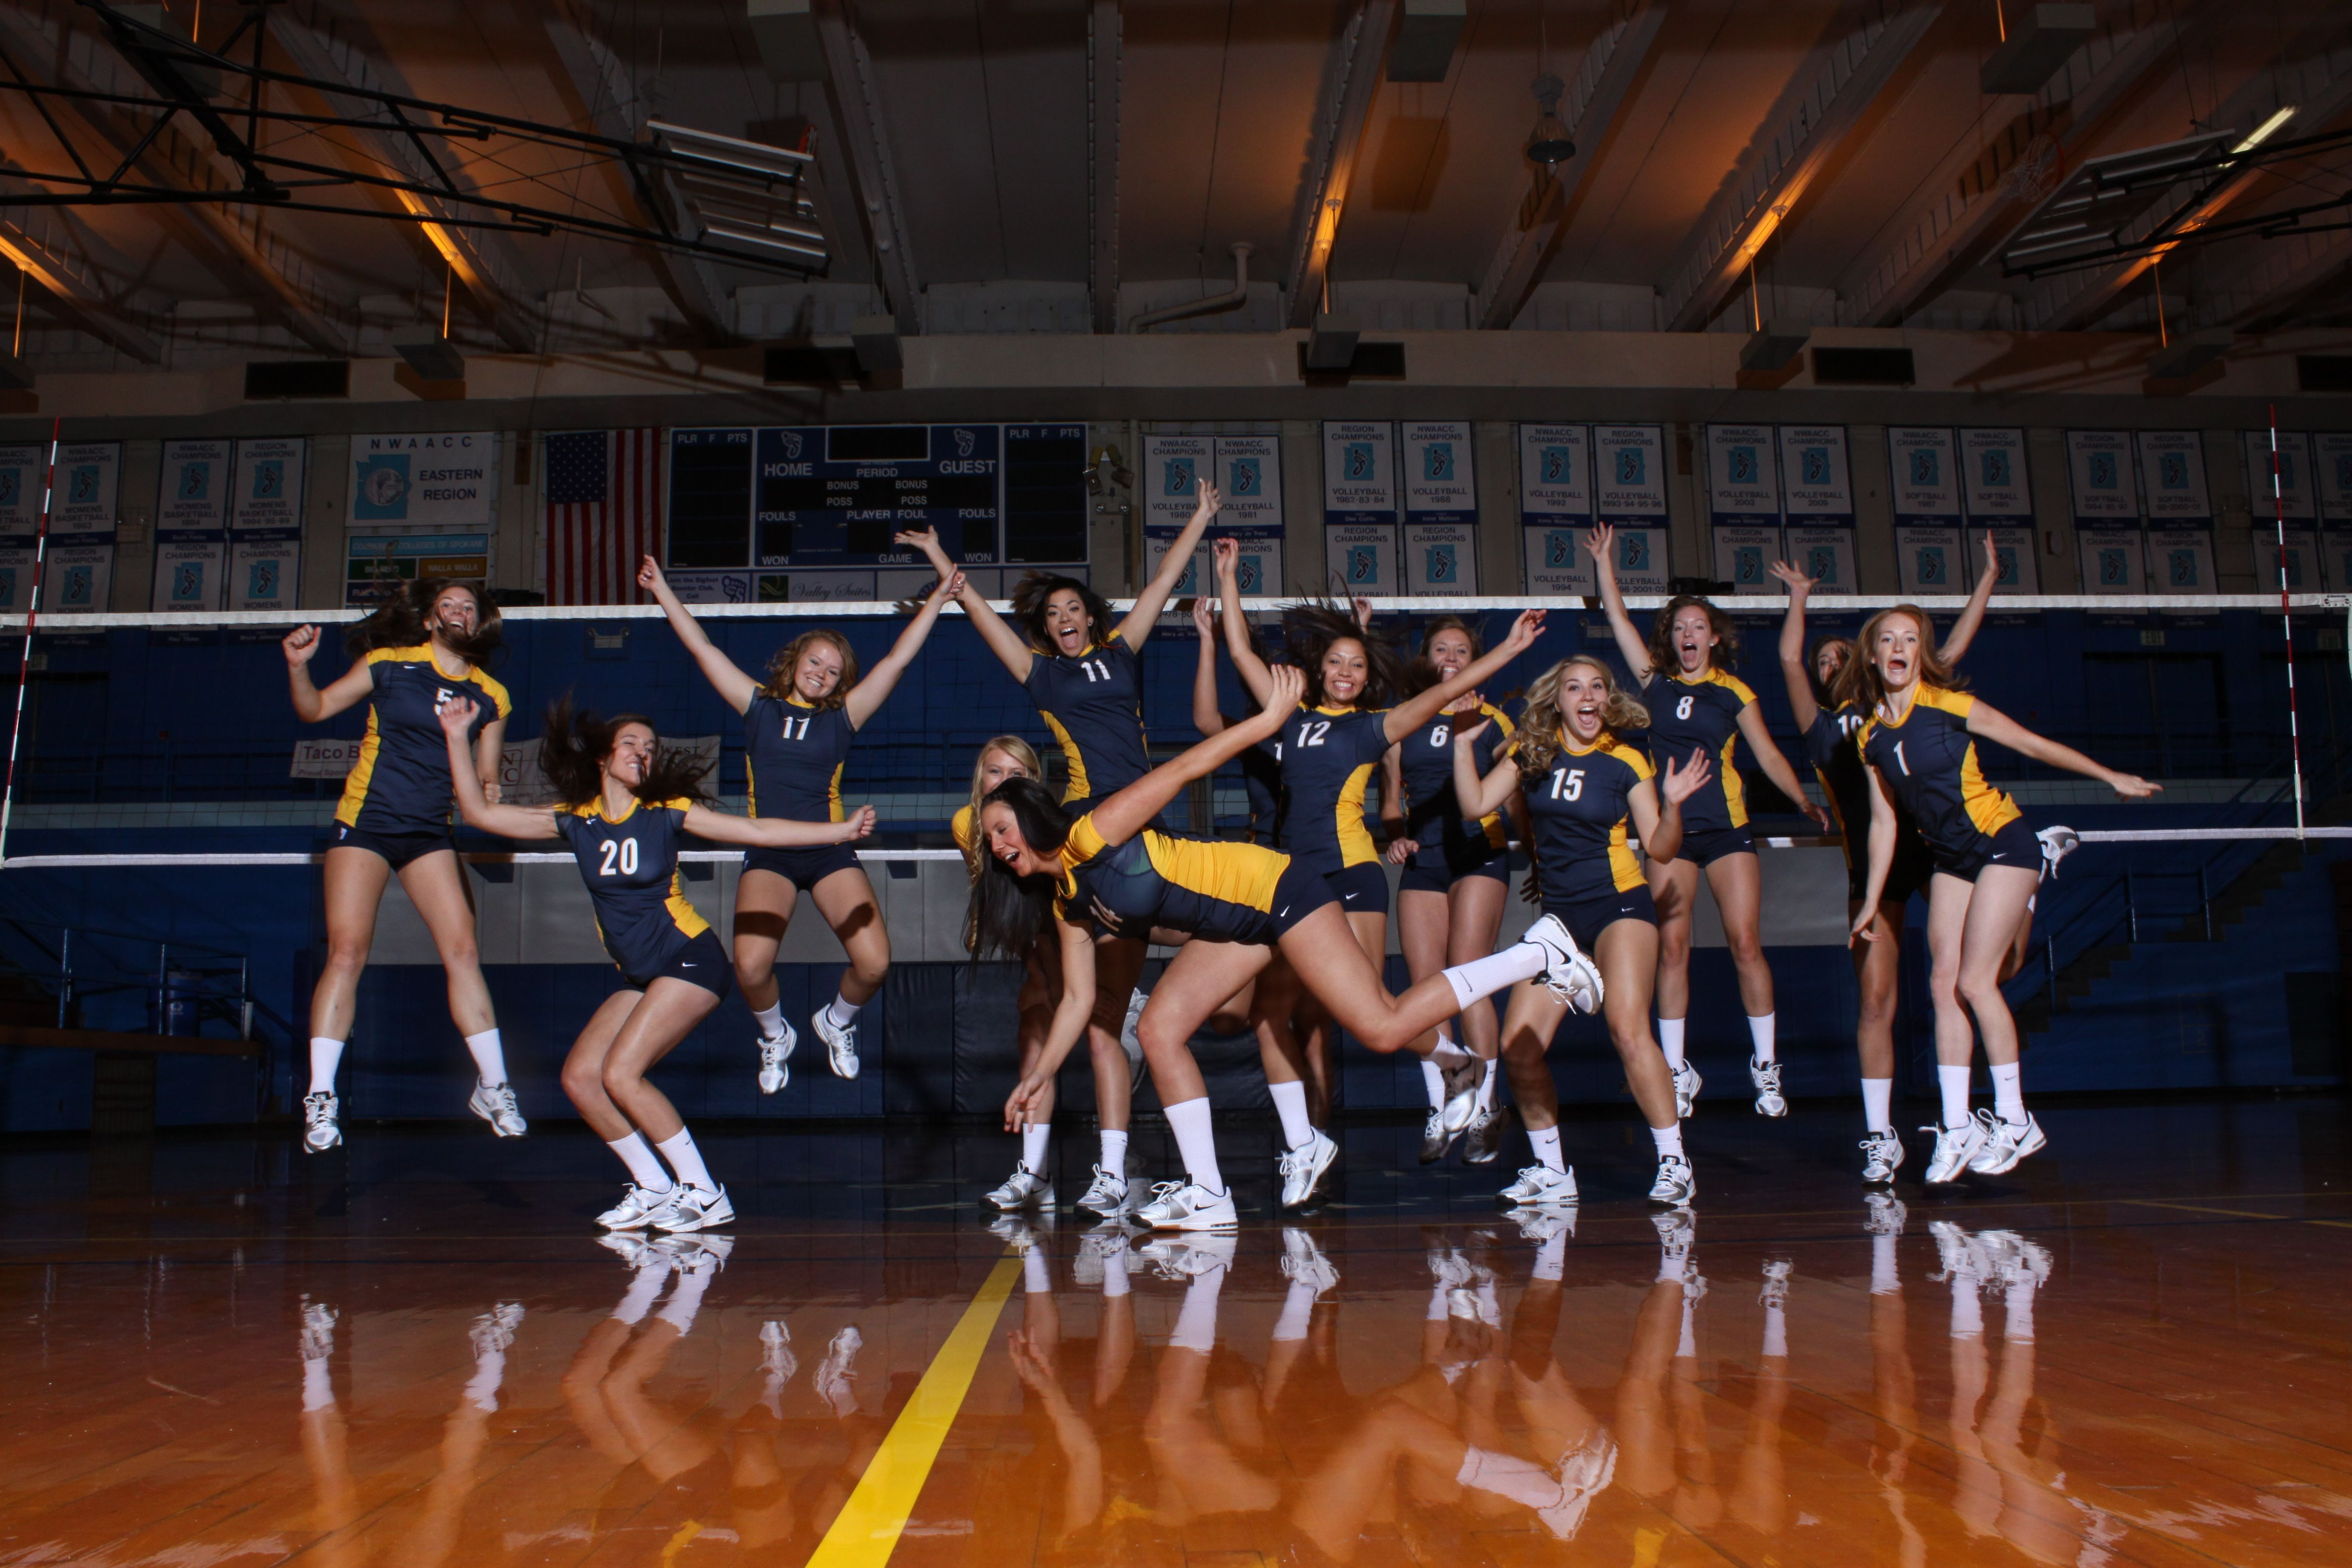 Volleyball Team Pictures For Community Colleges Of Spokane Volleyball Team Pictures Team Pictures Volleyball Team